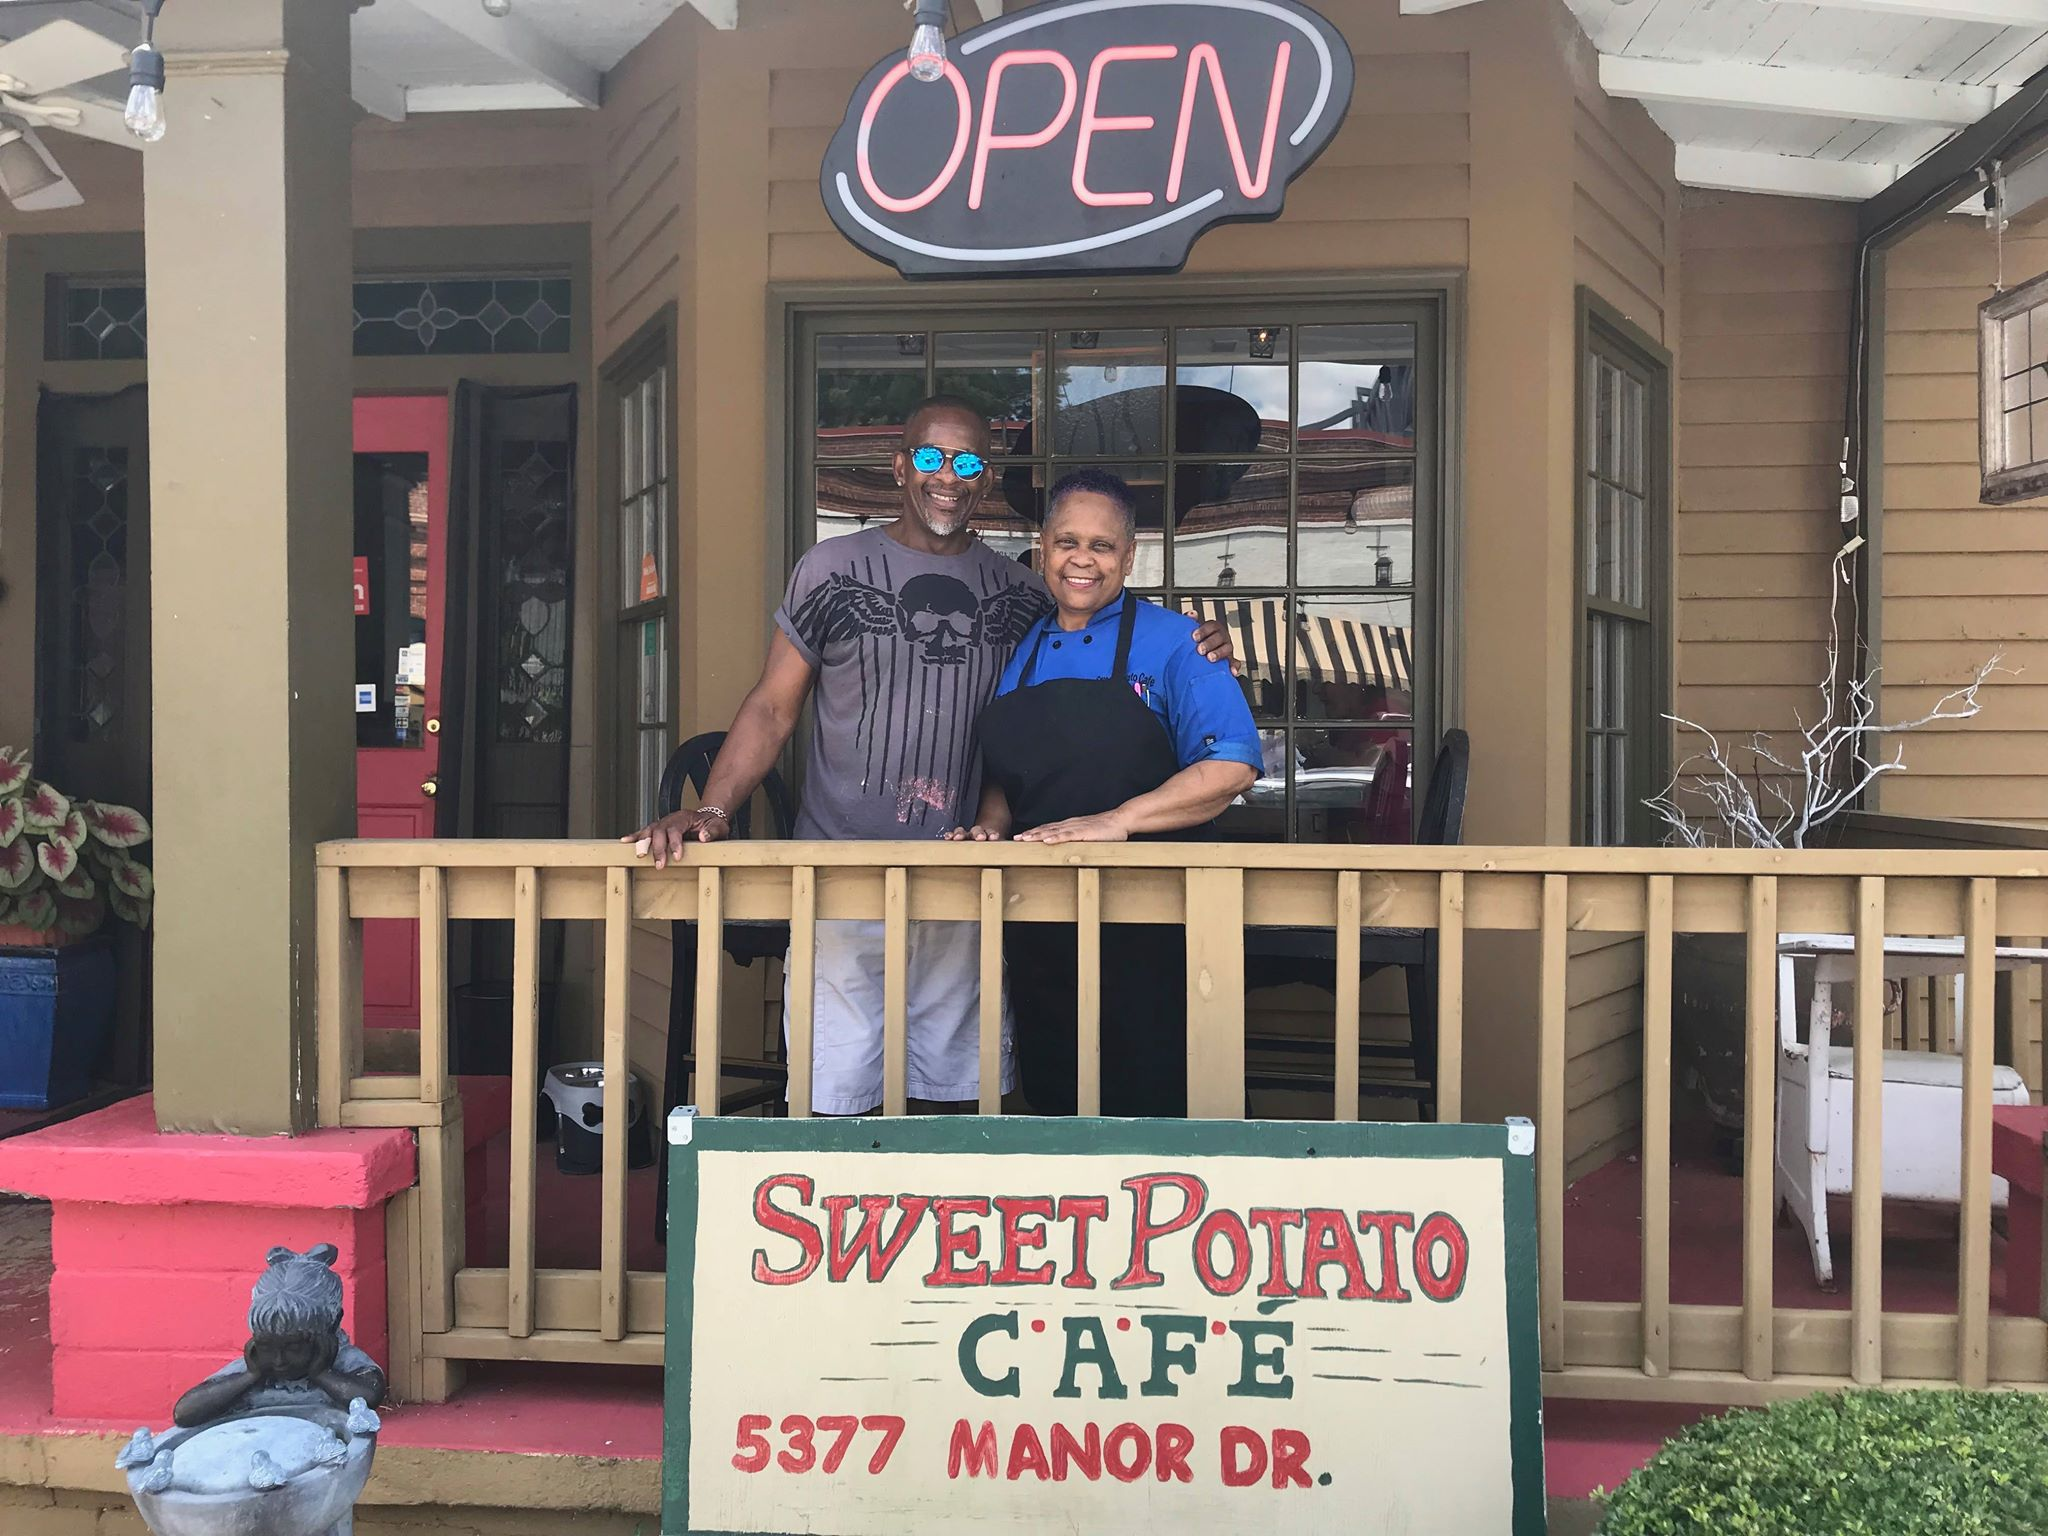 Owners of Sweet Potato Cafe, Darryl & Karen